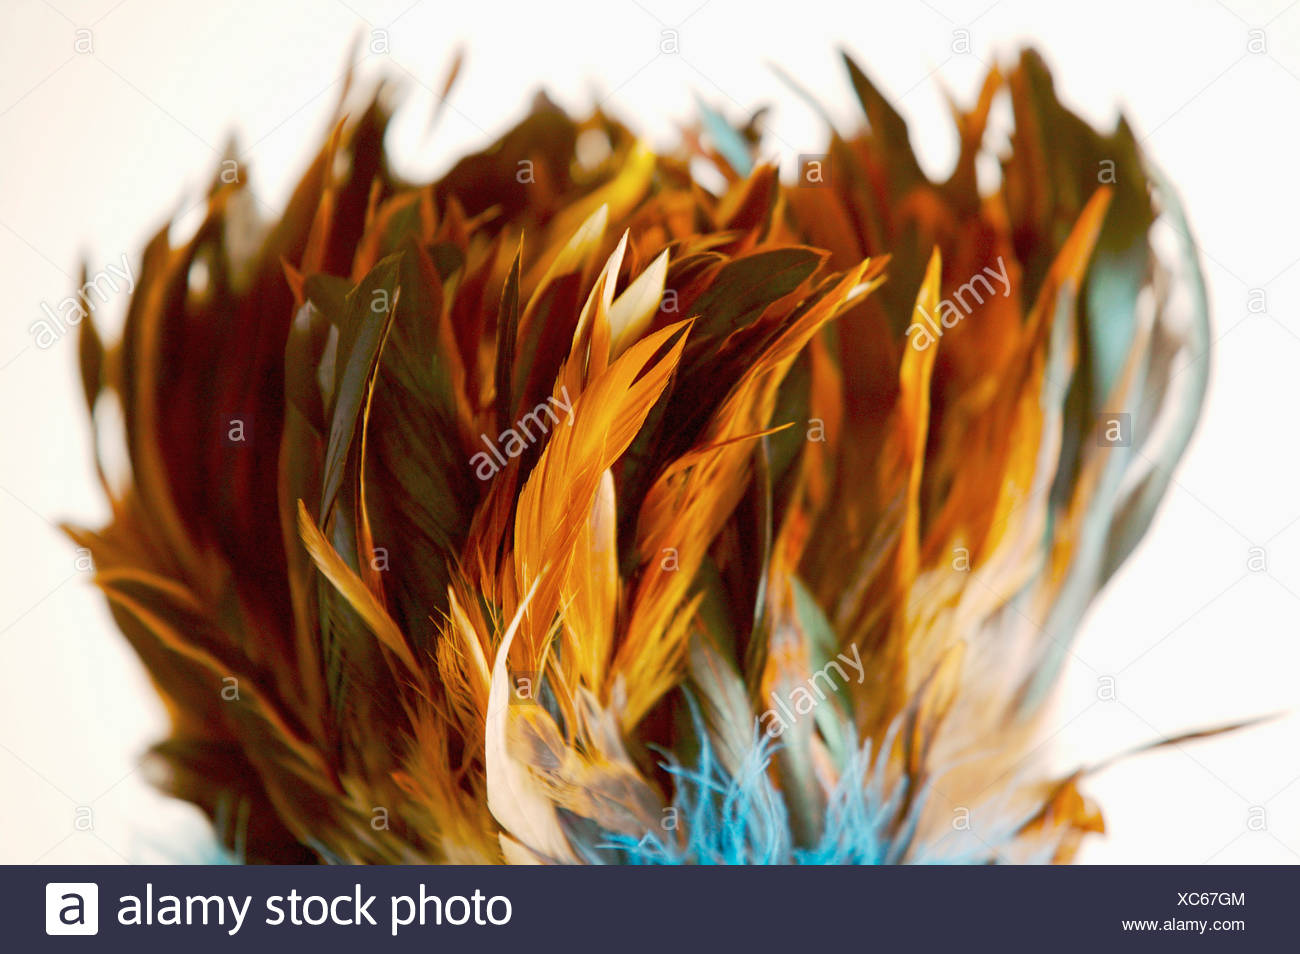 Bunch of plumes - Stock Image